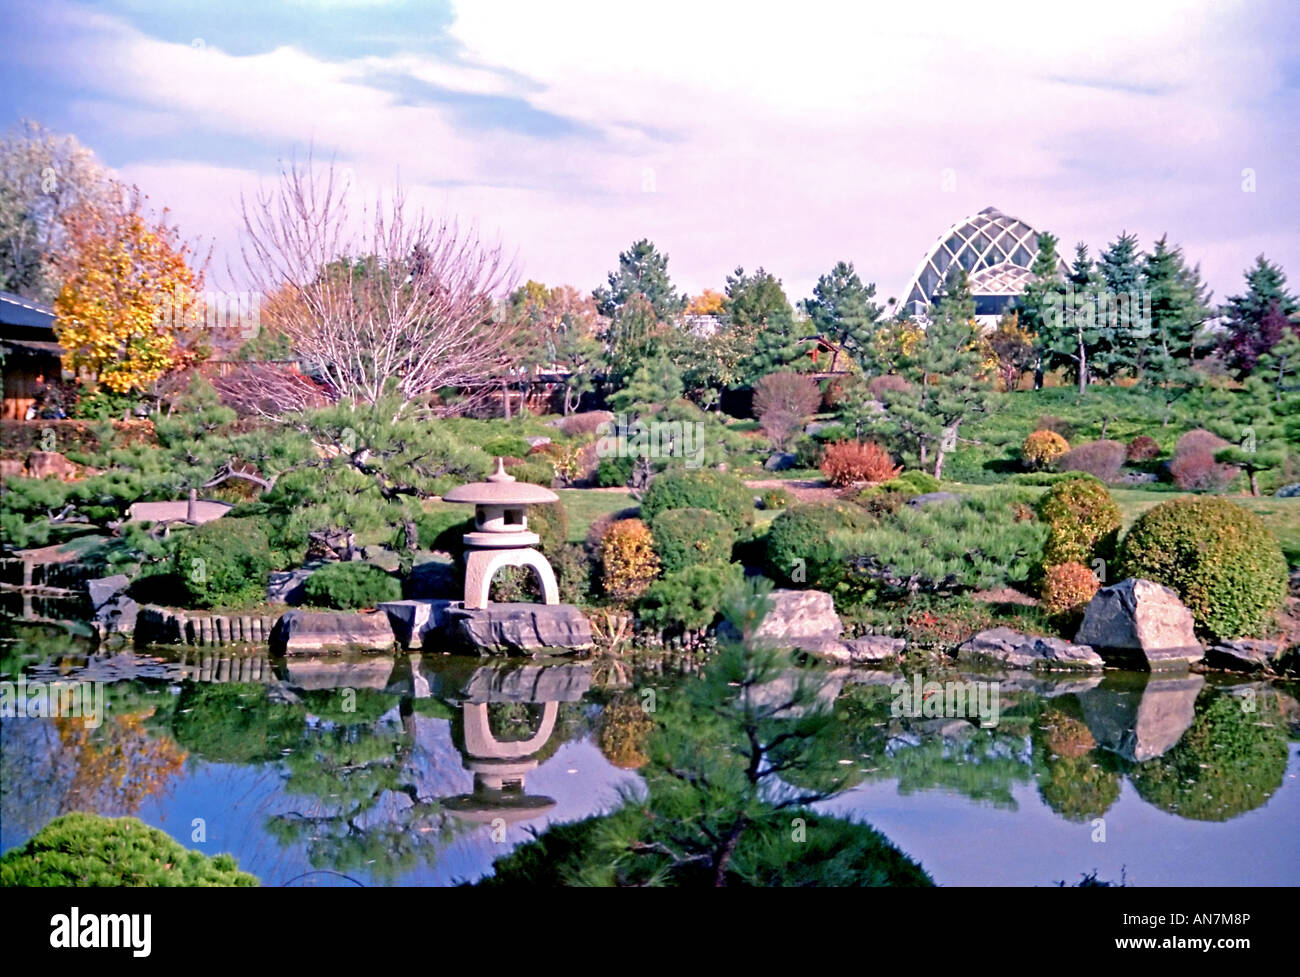 The Lush And Beautifully Sculpted Denver Botanic Gardens In Colorado Stock Photo 15439077 Alamy